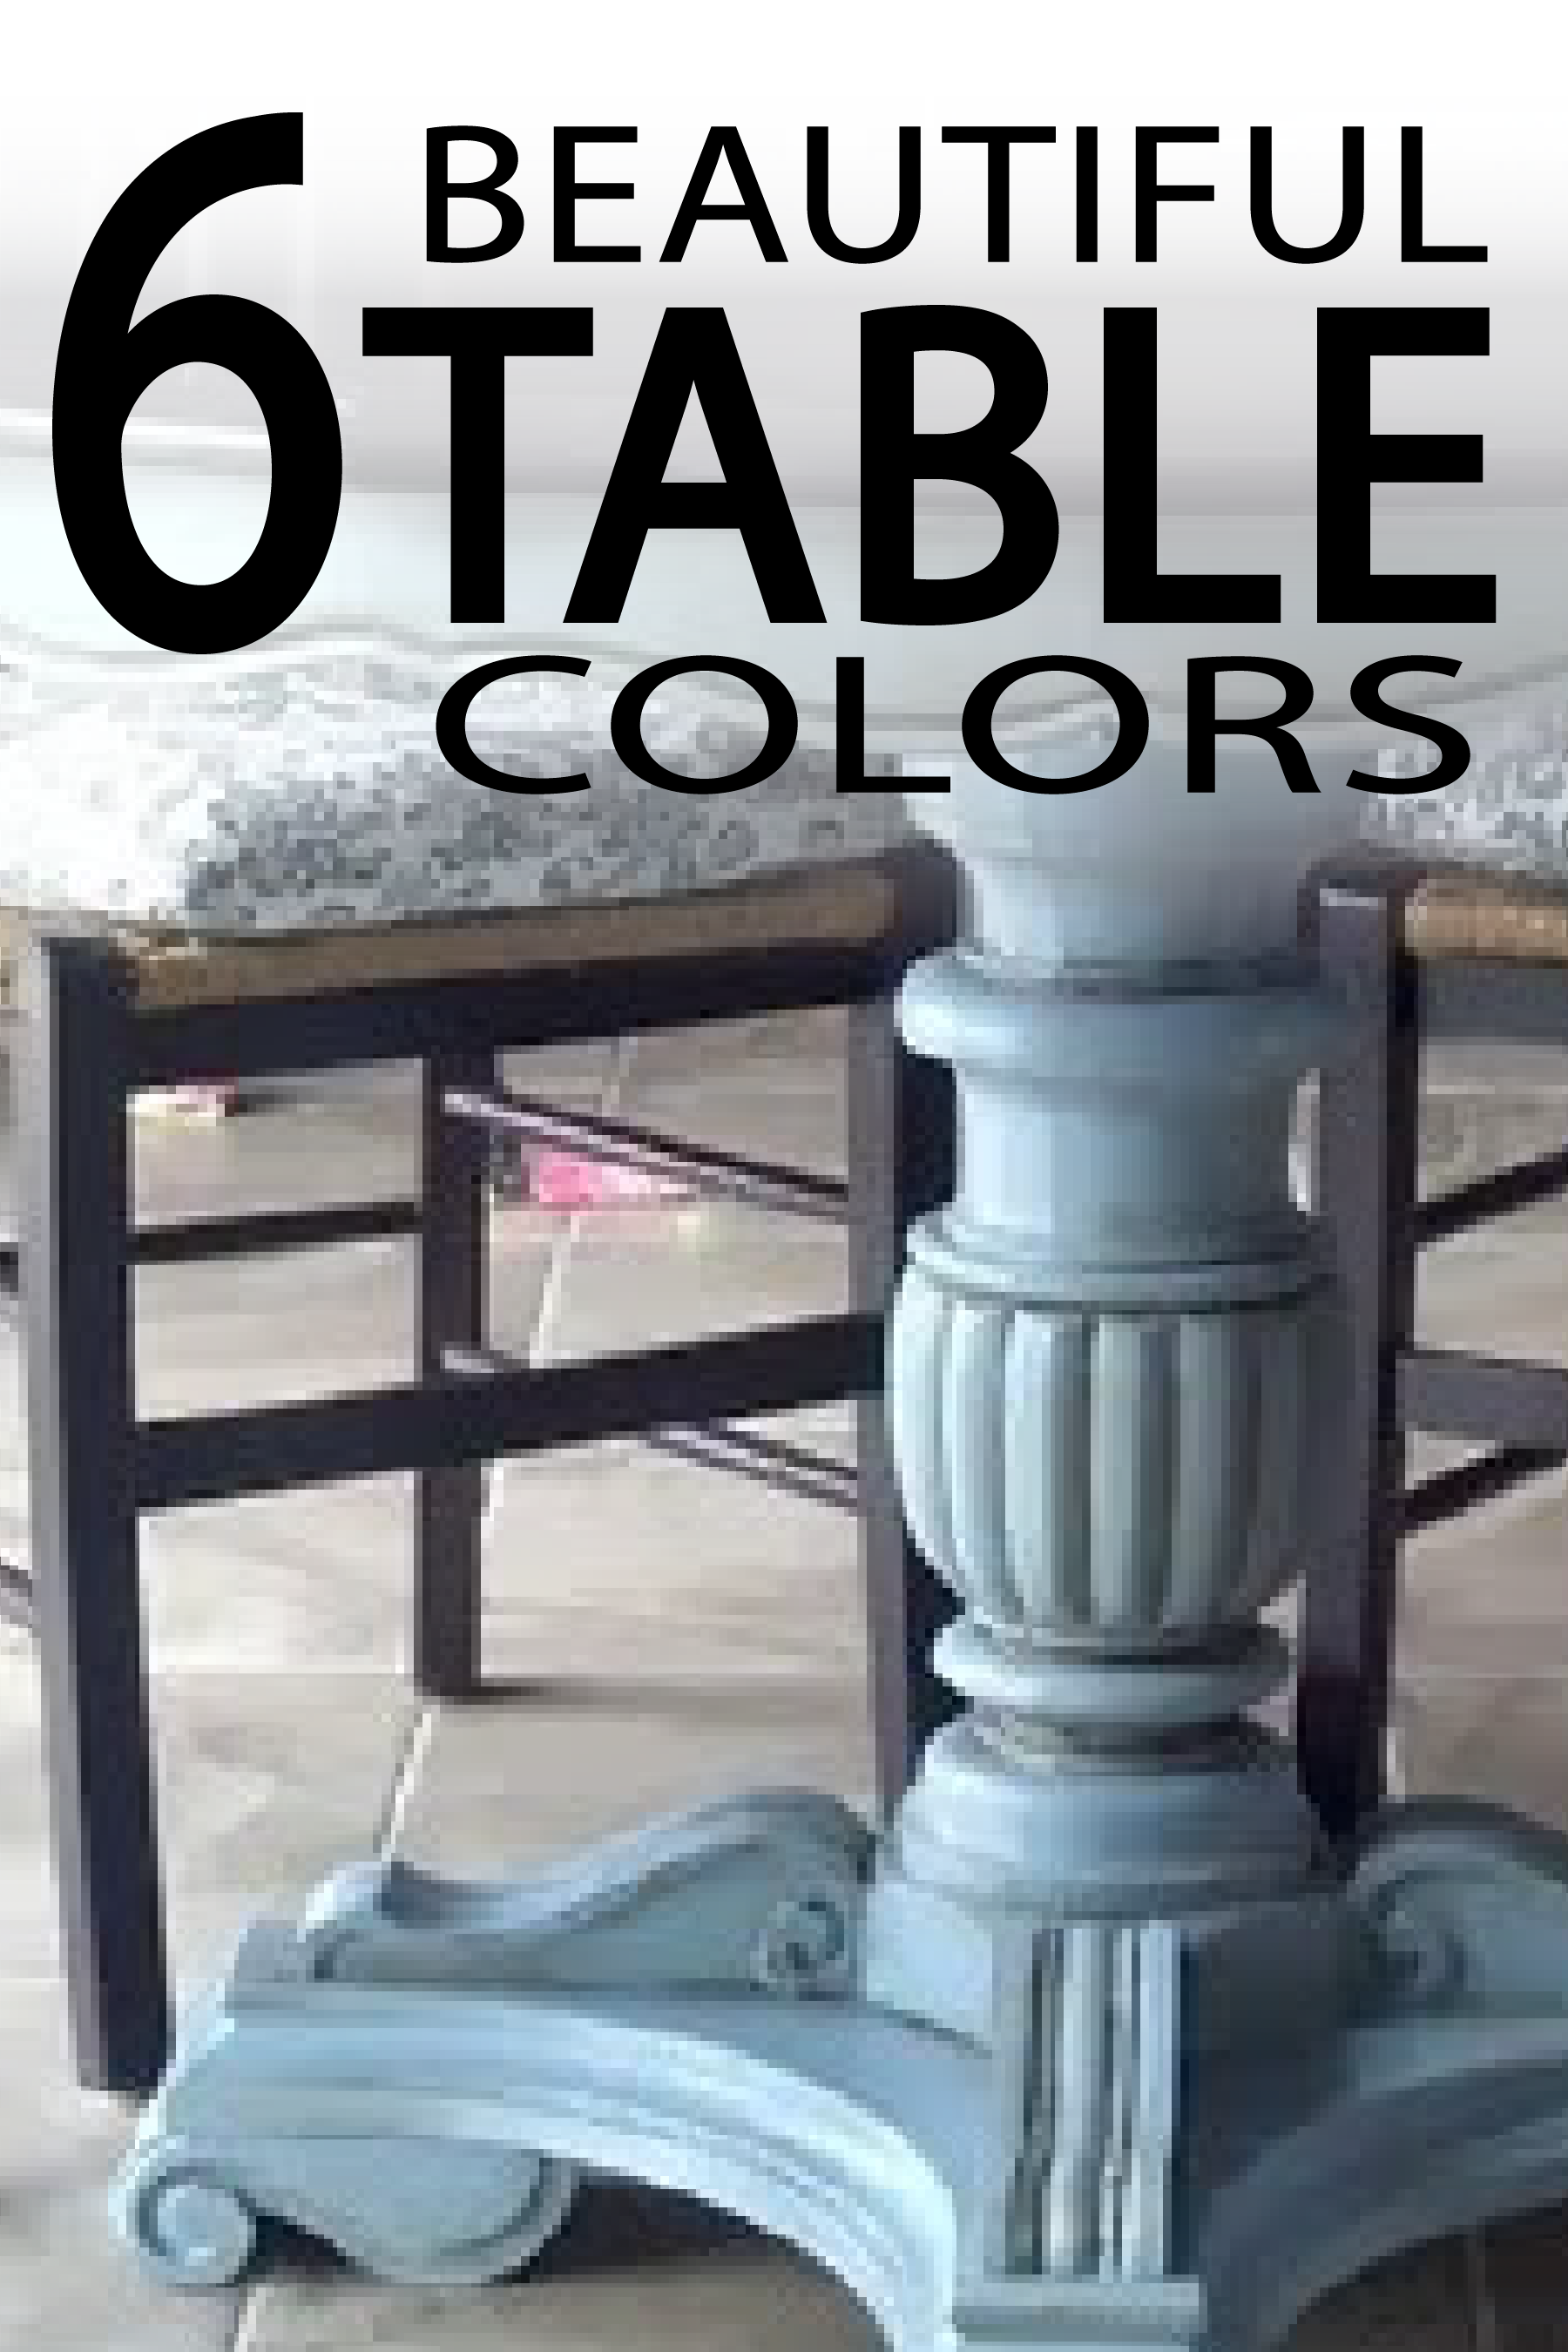 6 Beautiful Table colors to inspire your next DIY project! PAINTEDFURNITUREIDEAS.COM